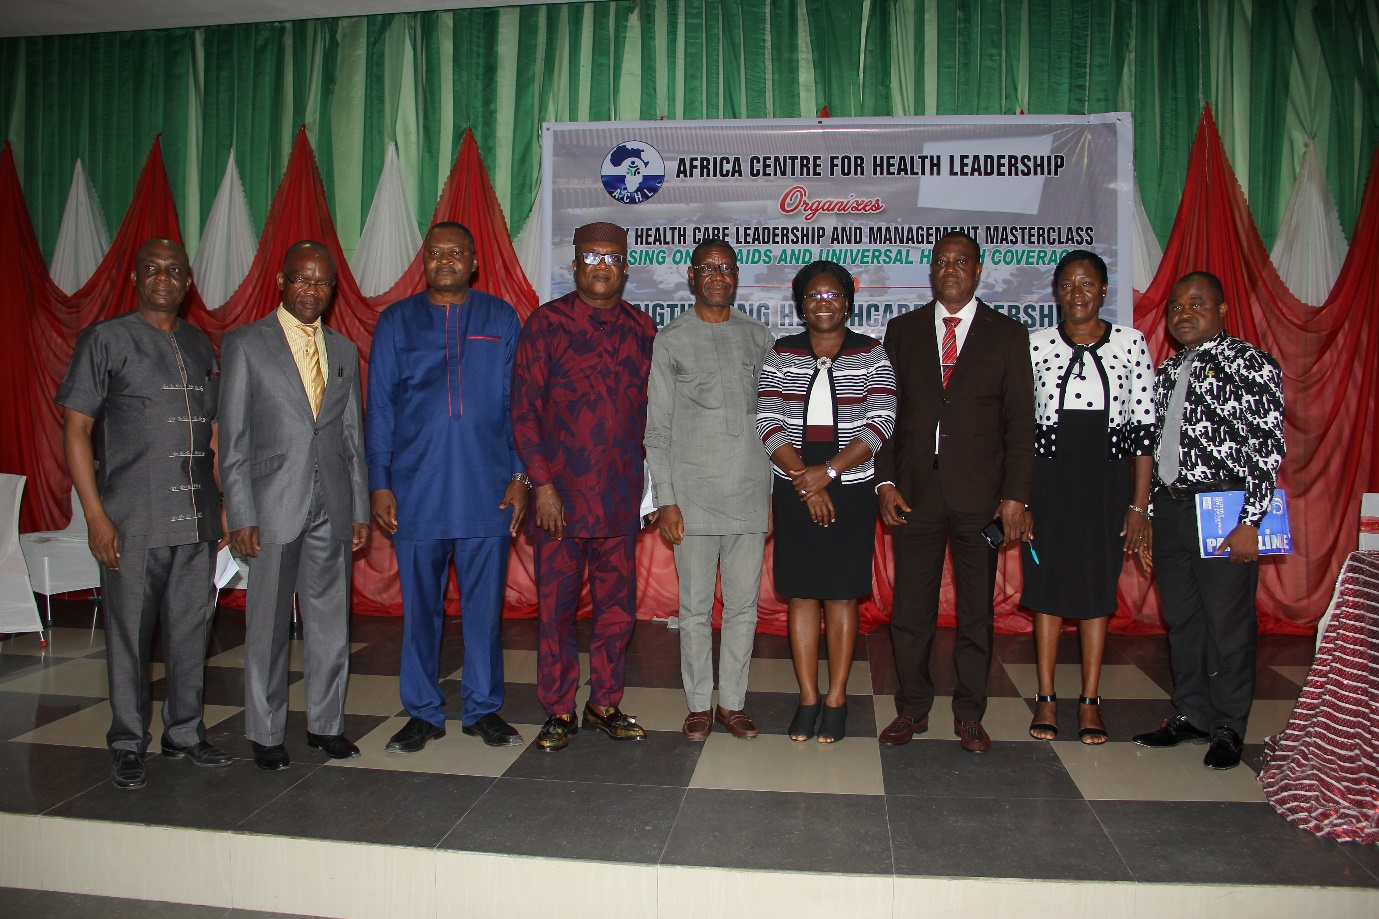 Achl Concludes Its Innovative Health Care Leadership Masterclass In Uyo, Akwa Ibom State, 27-29 August, 2019